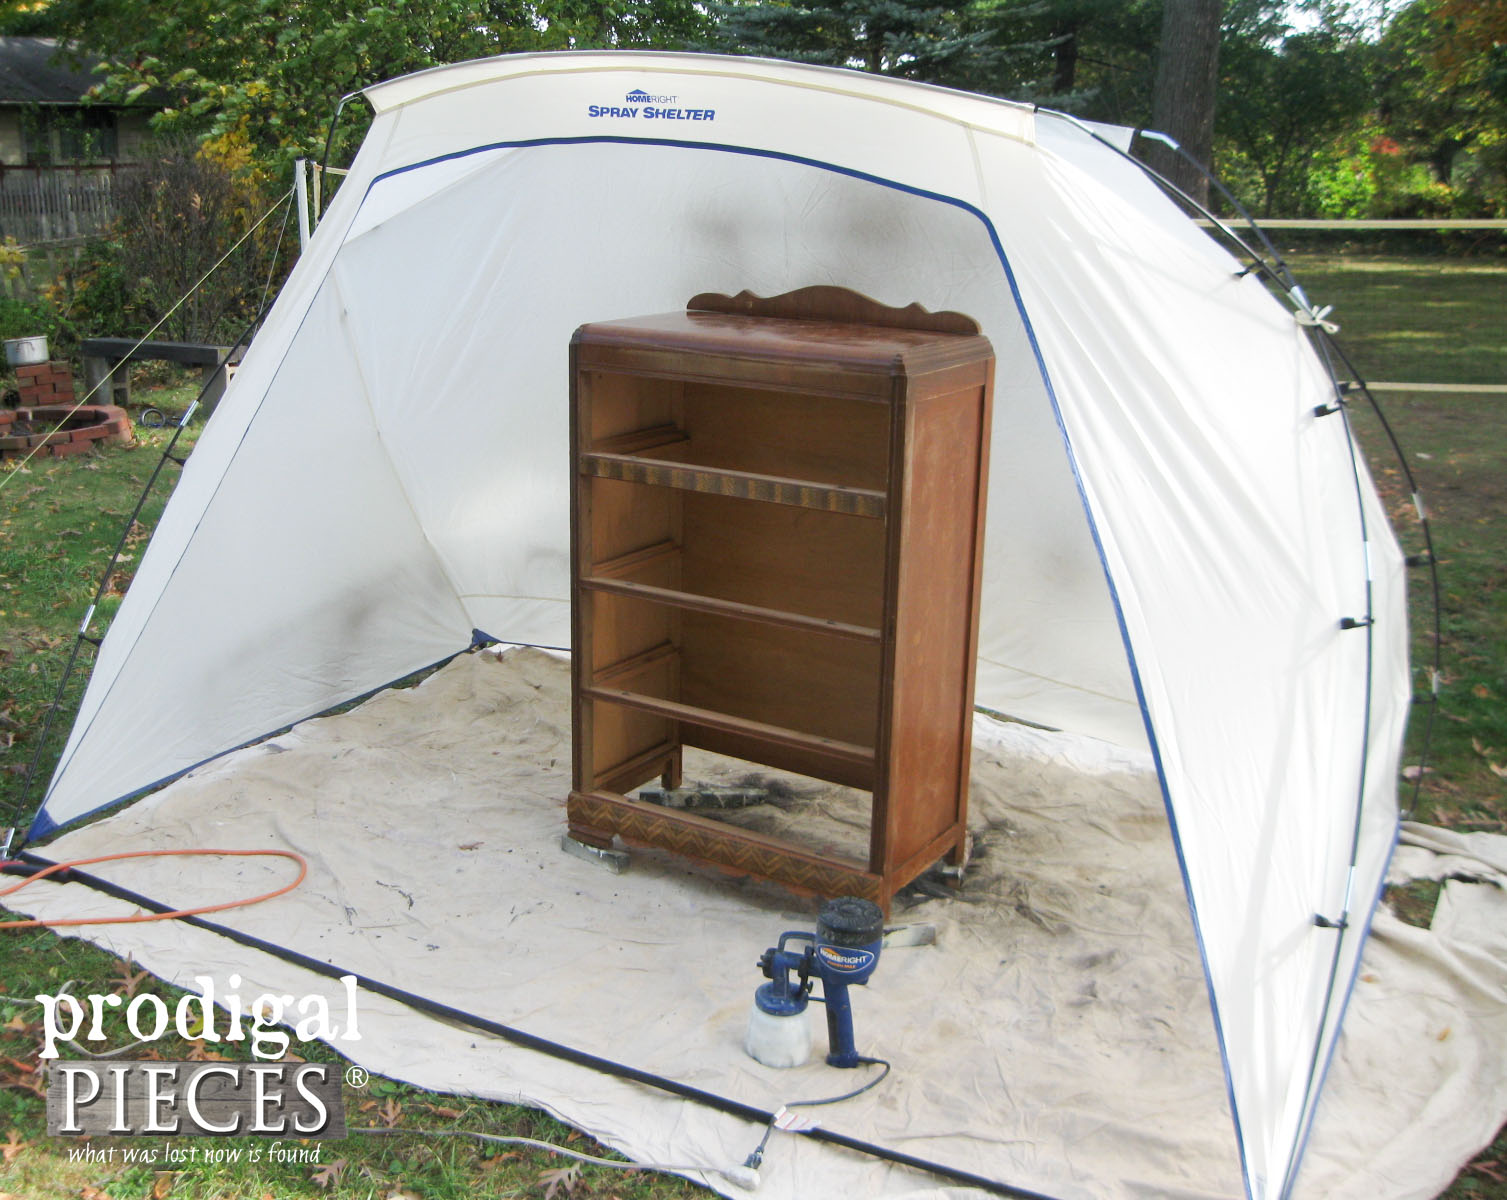 HomeRight Spray Shelter and Finish Max Paint Sprayer | Prodigal Pieces | www.prodigalpieces.com